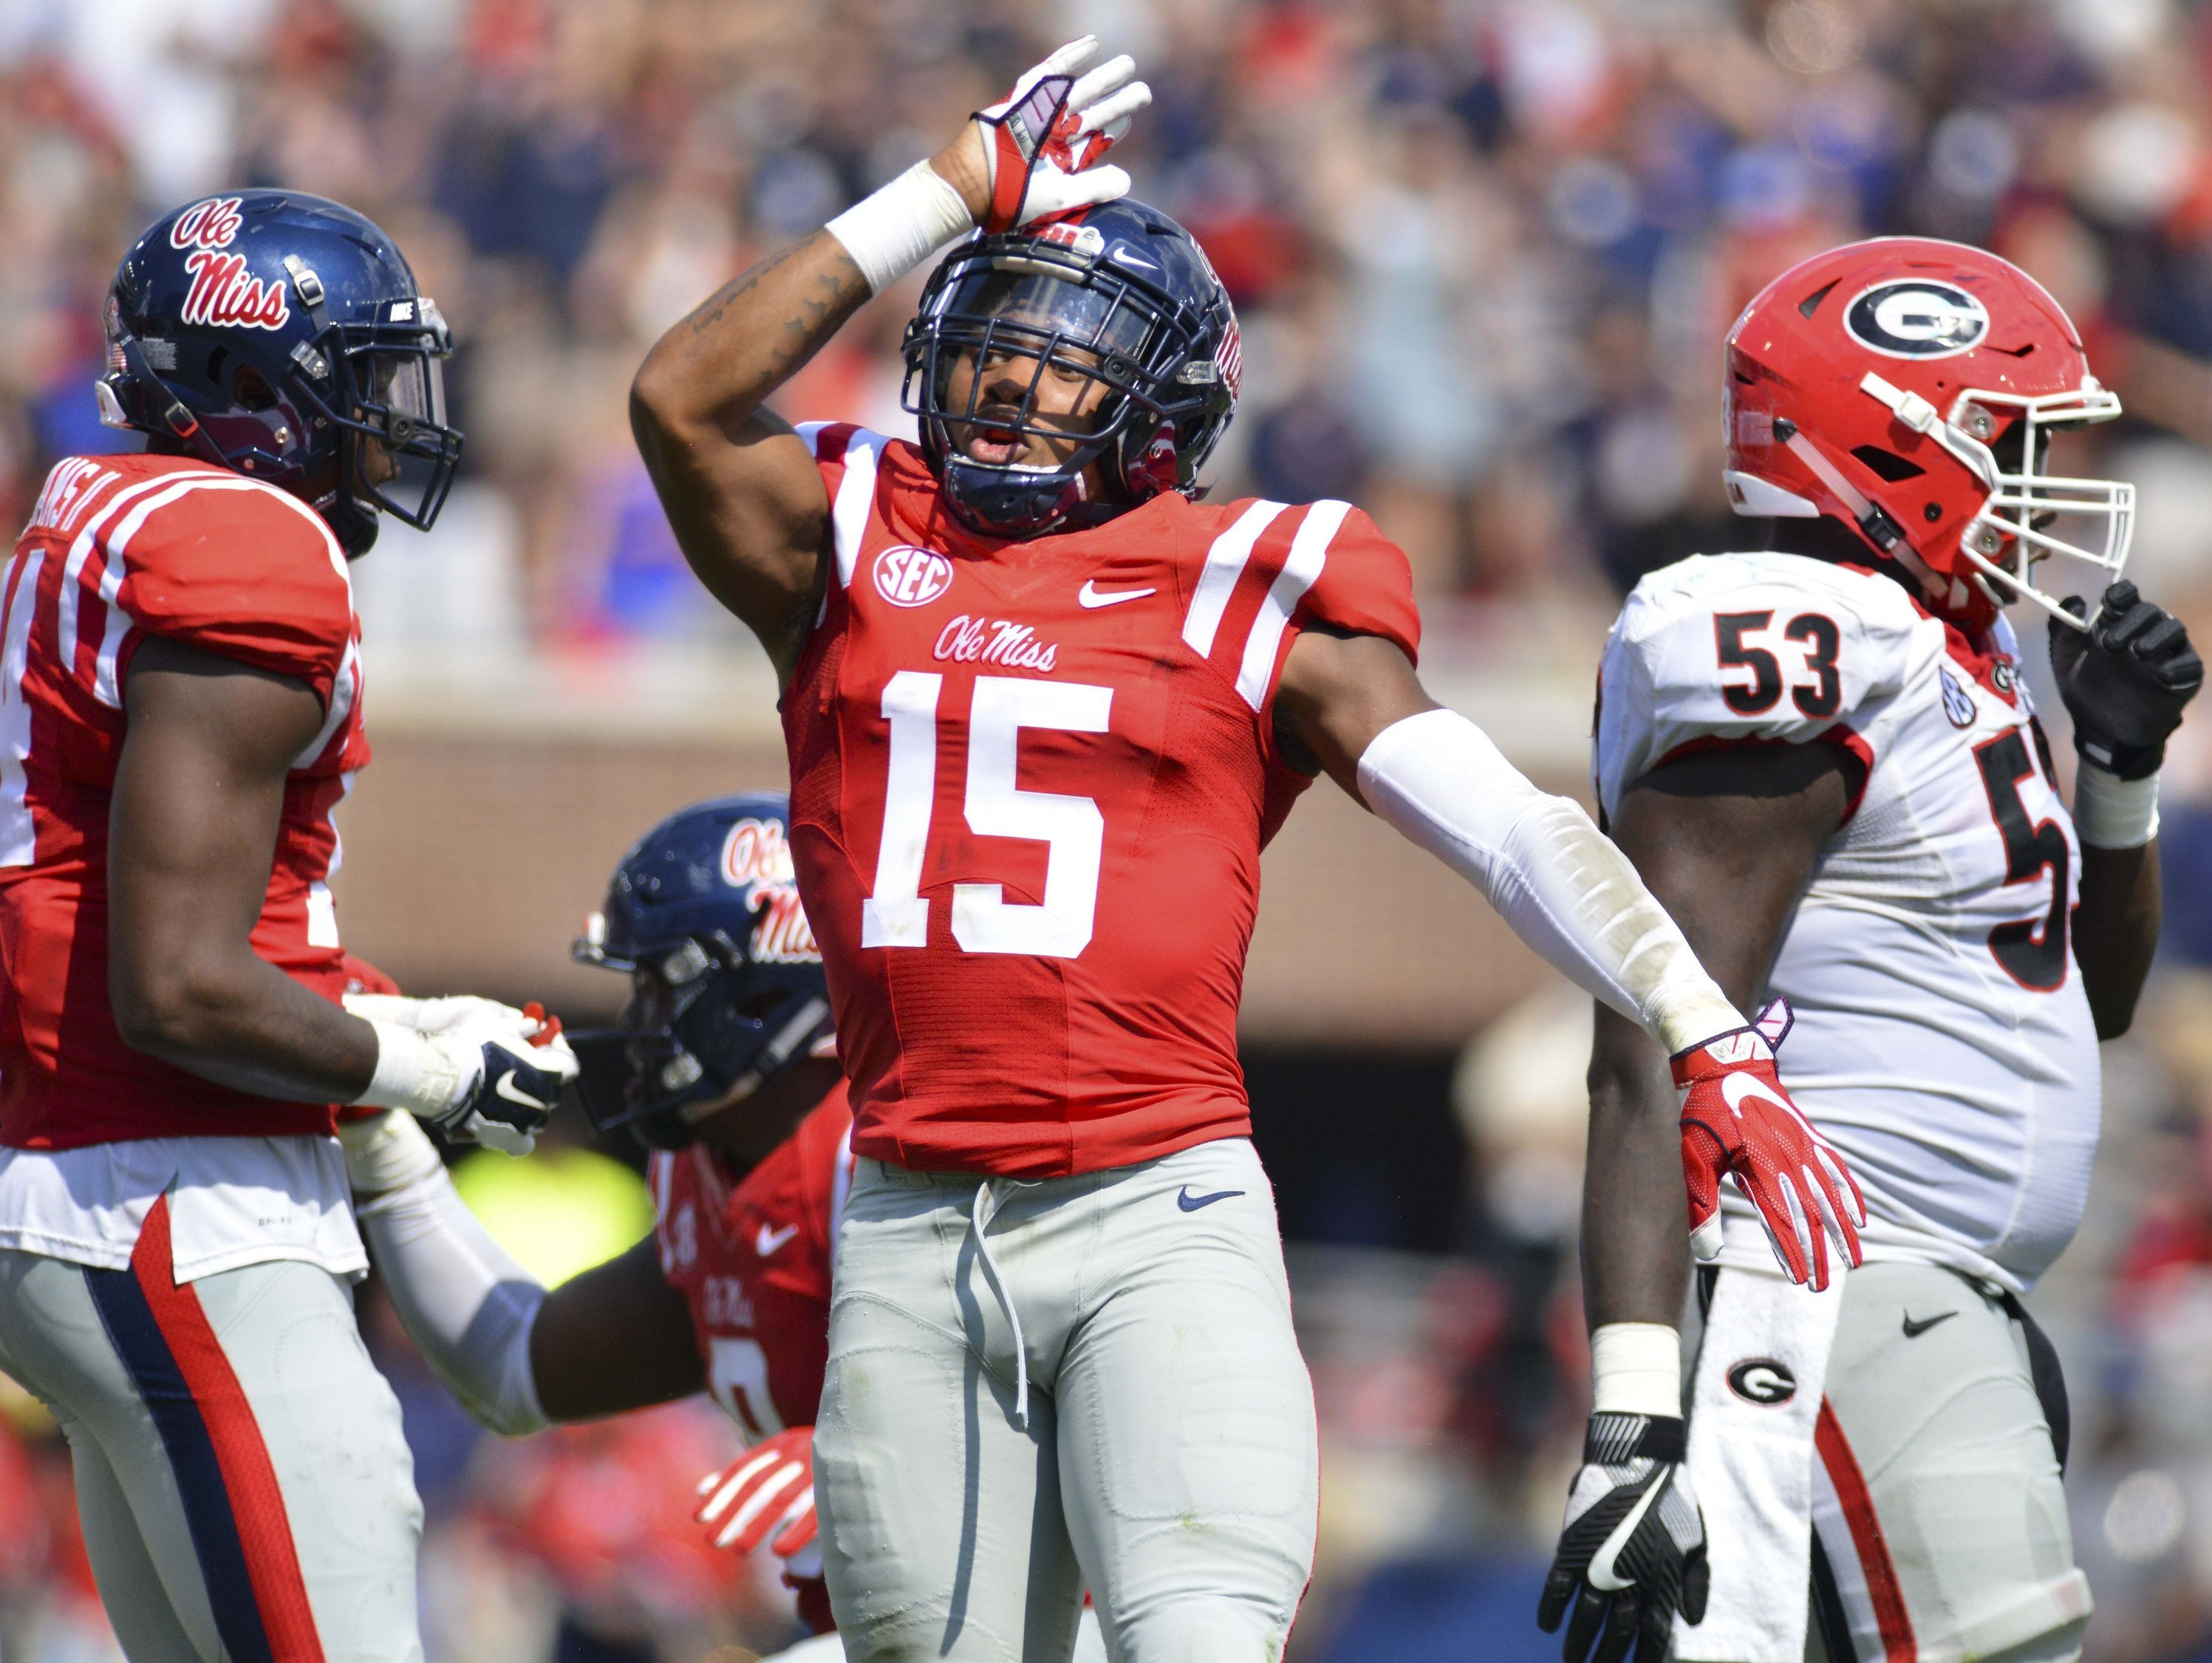 In this Sept. 24, 2016, file photo, Ole Miss defensive back Myles Hartsfield (15) makes the Landshark sign after a play during the second quarter of the game against Georgia